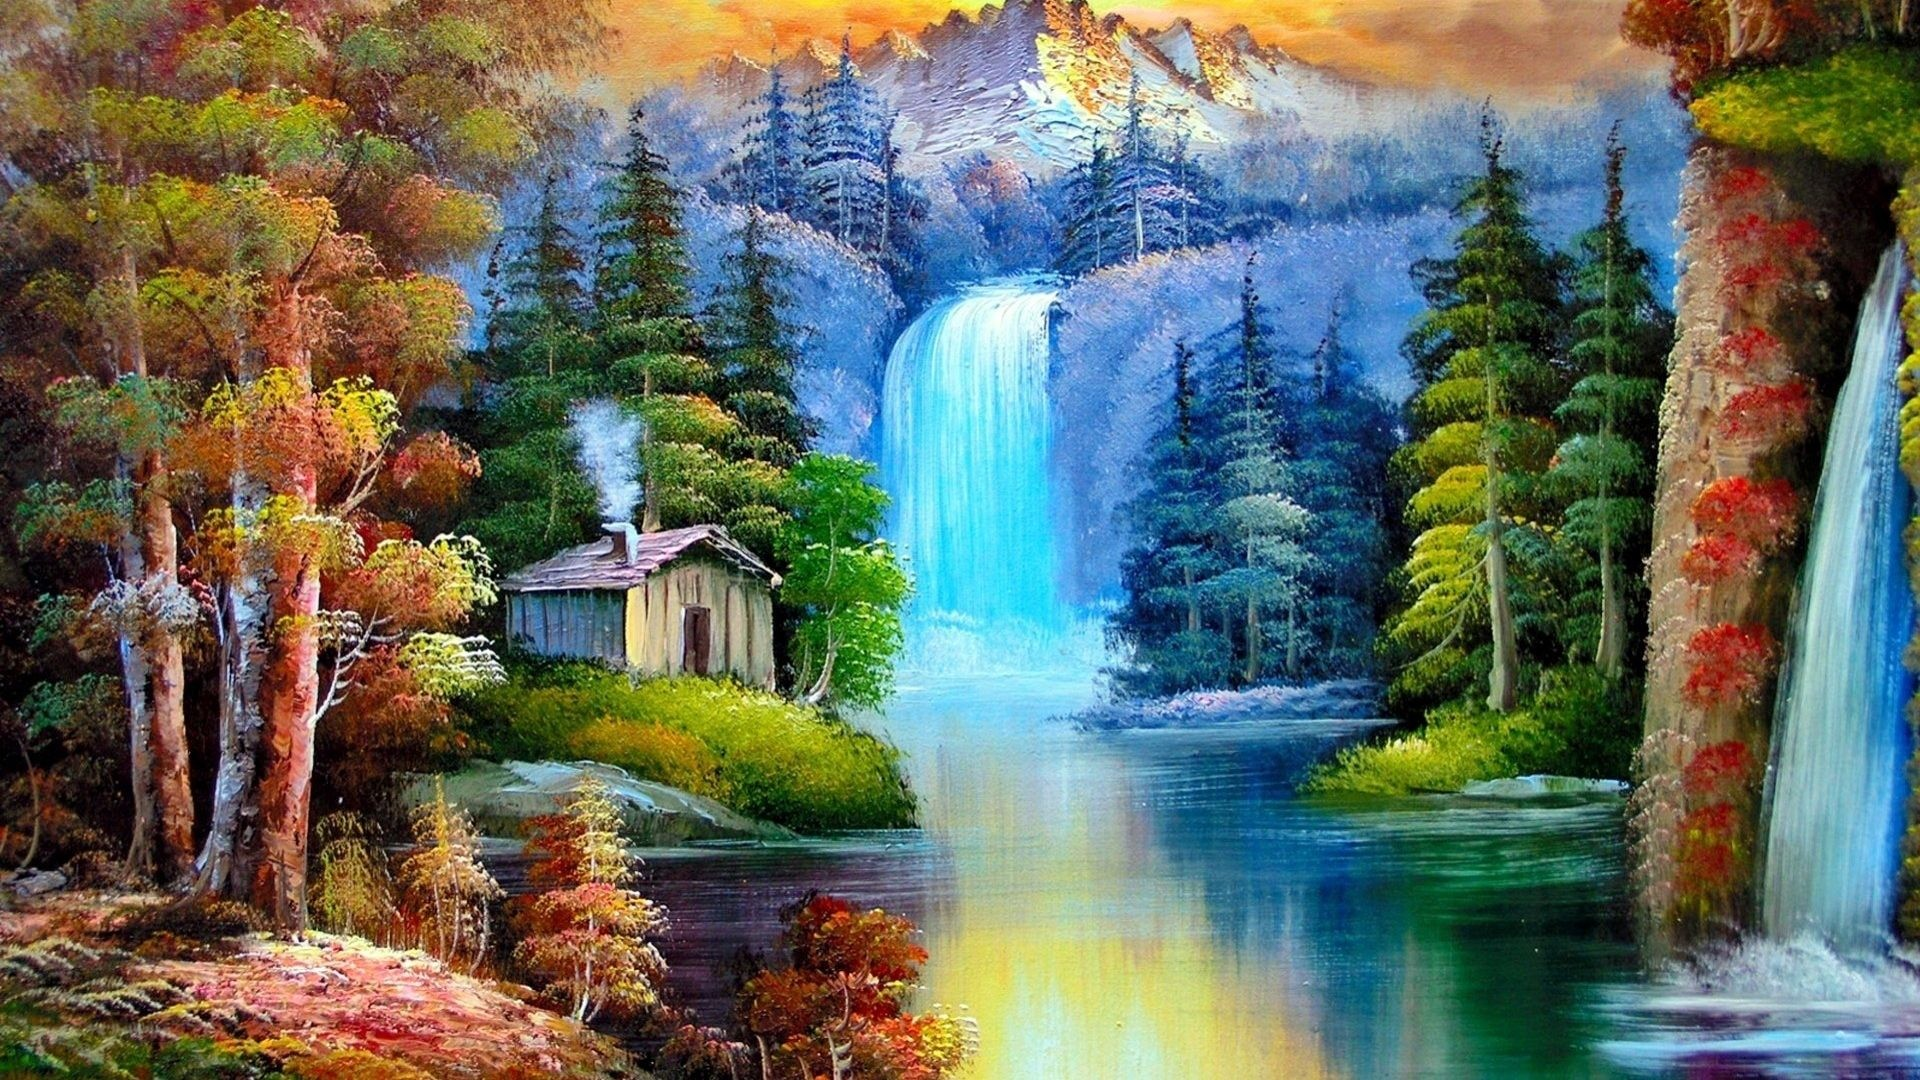 1920x1080 Hd Wallpapers Waterfall: Waterfall Desktop Backgrounds (62+ Images